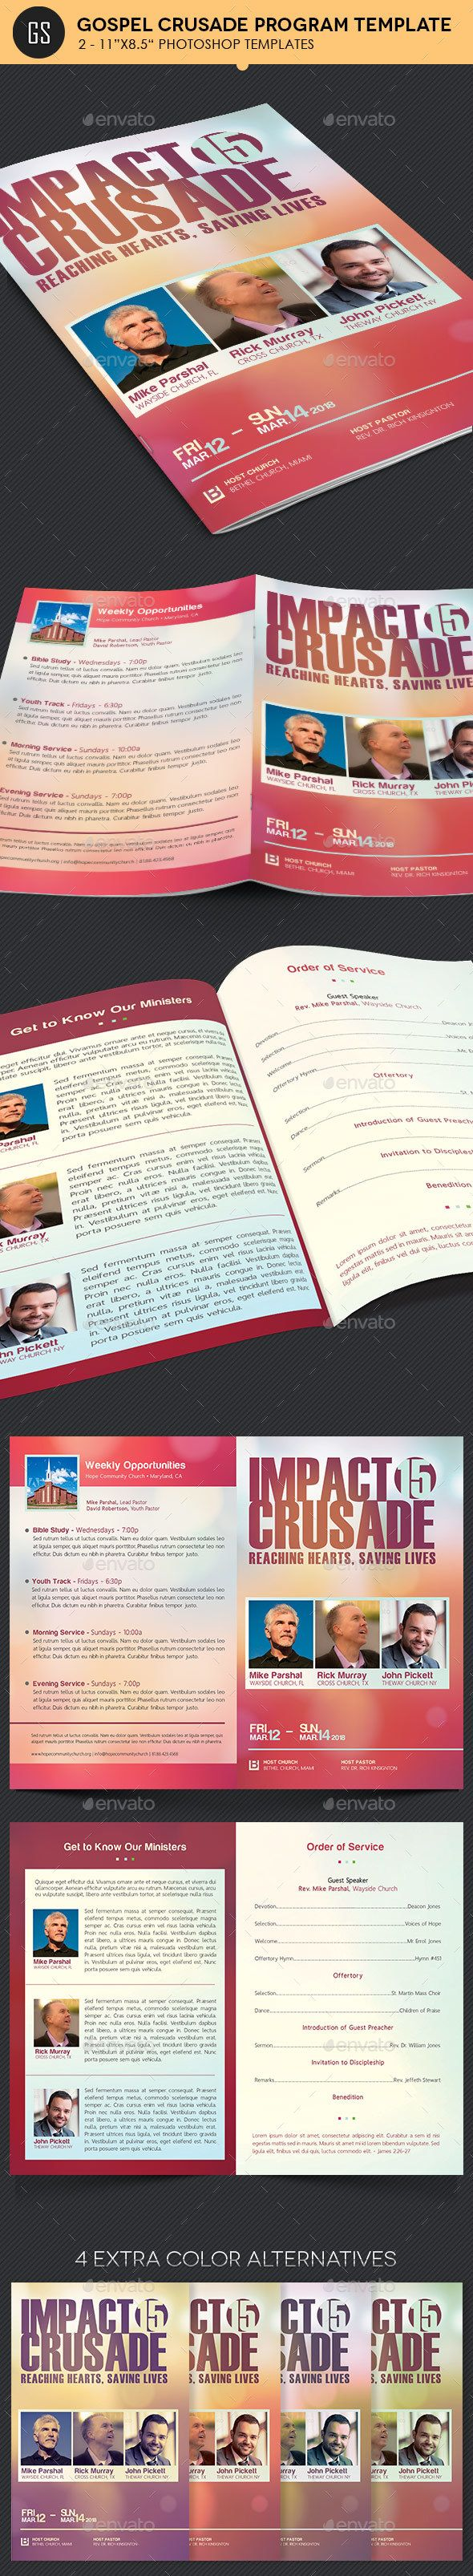 gospel crusade program template informational brochures